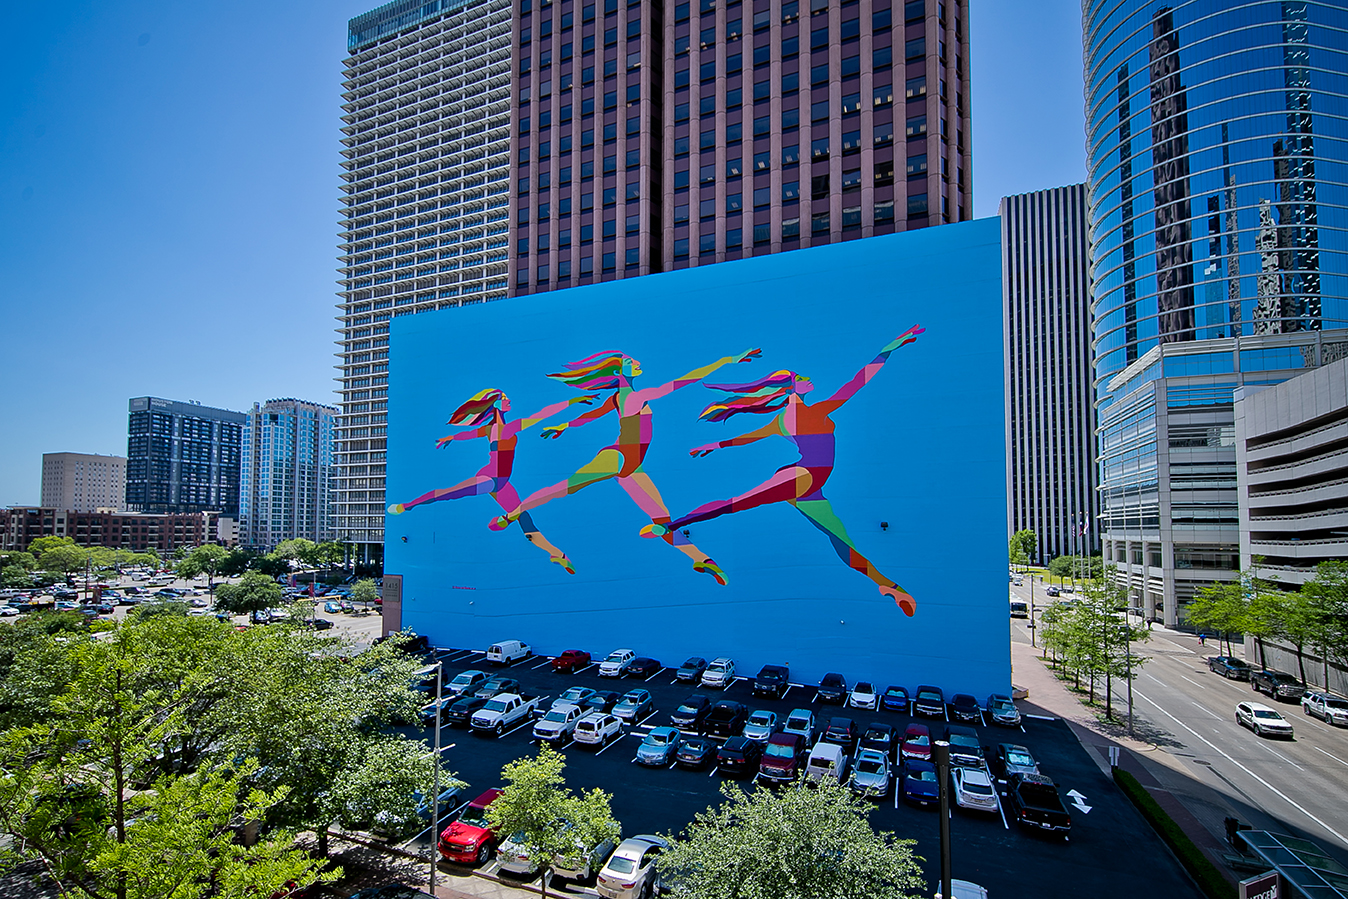 Houston SKYDANCE mural photo by morris malakoff